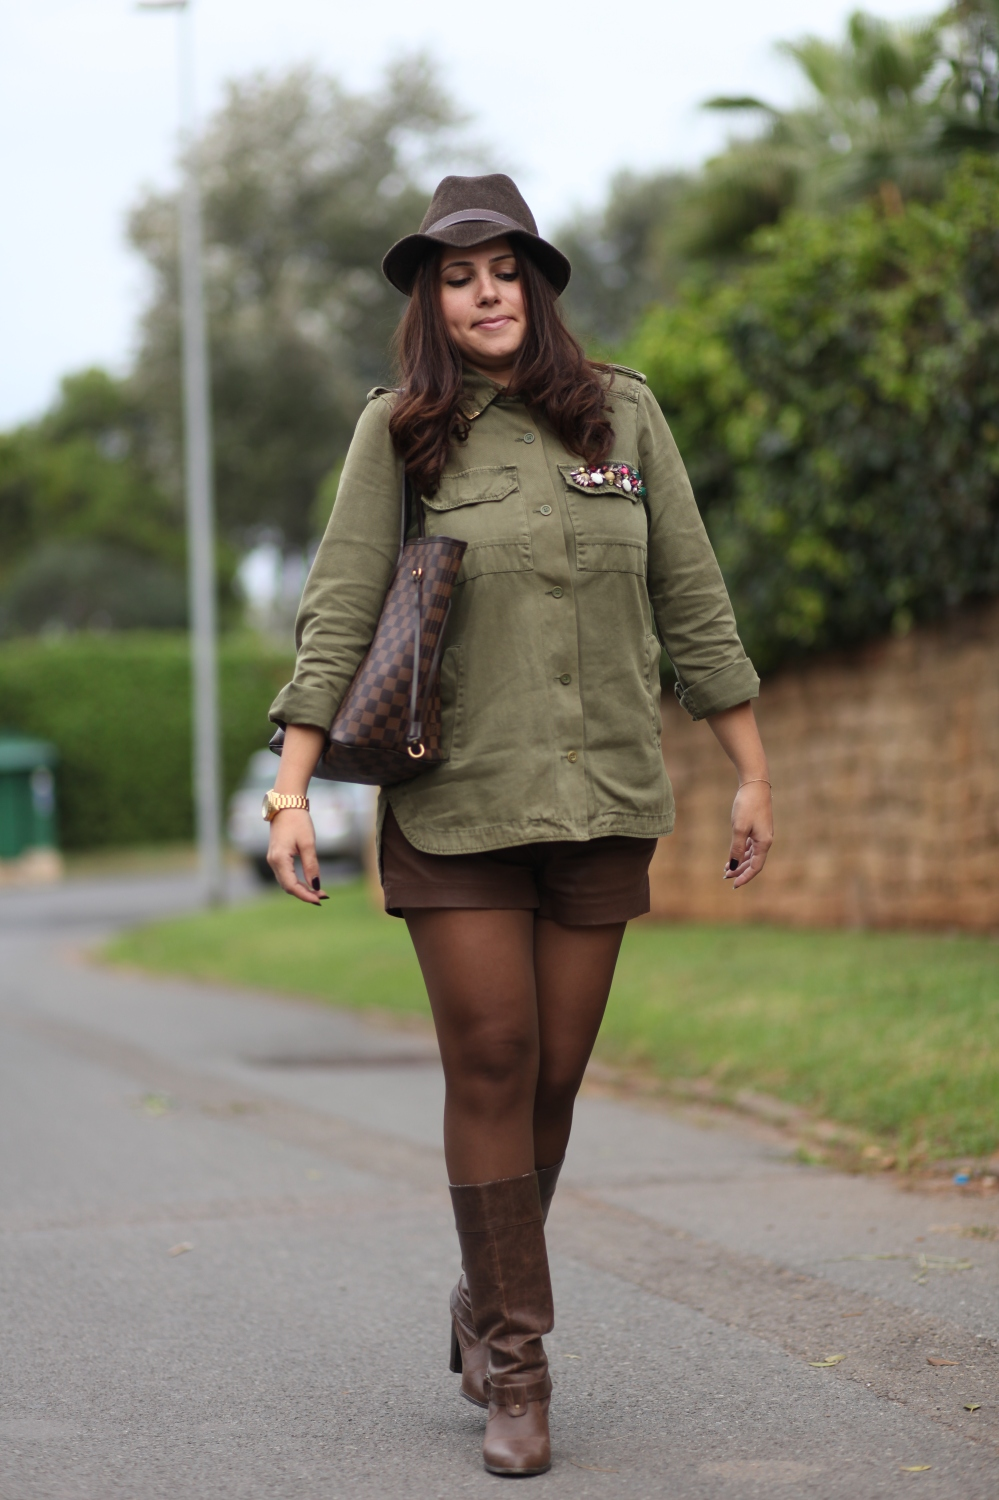 military-jacket-blog-mode-chiccarpediem-8.JPG